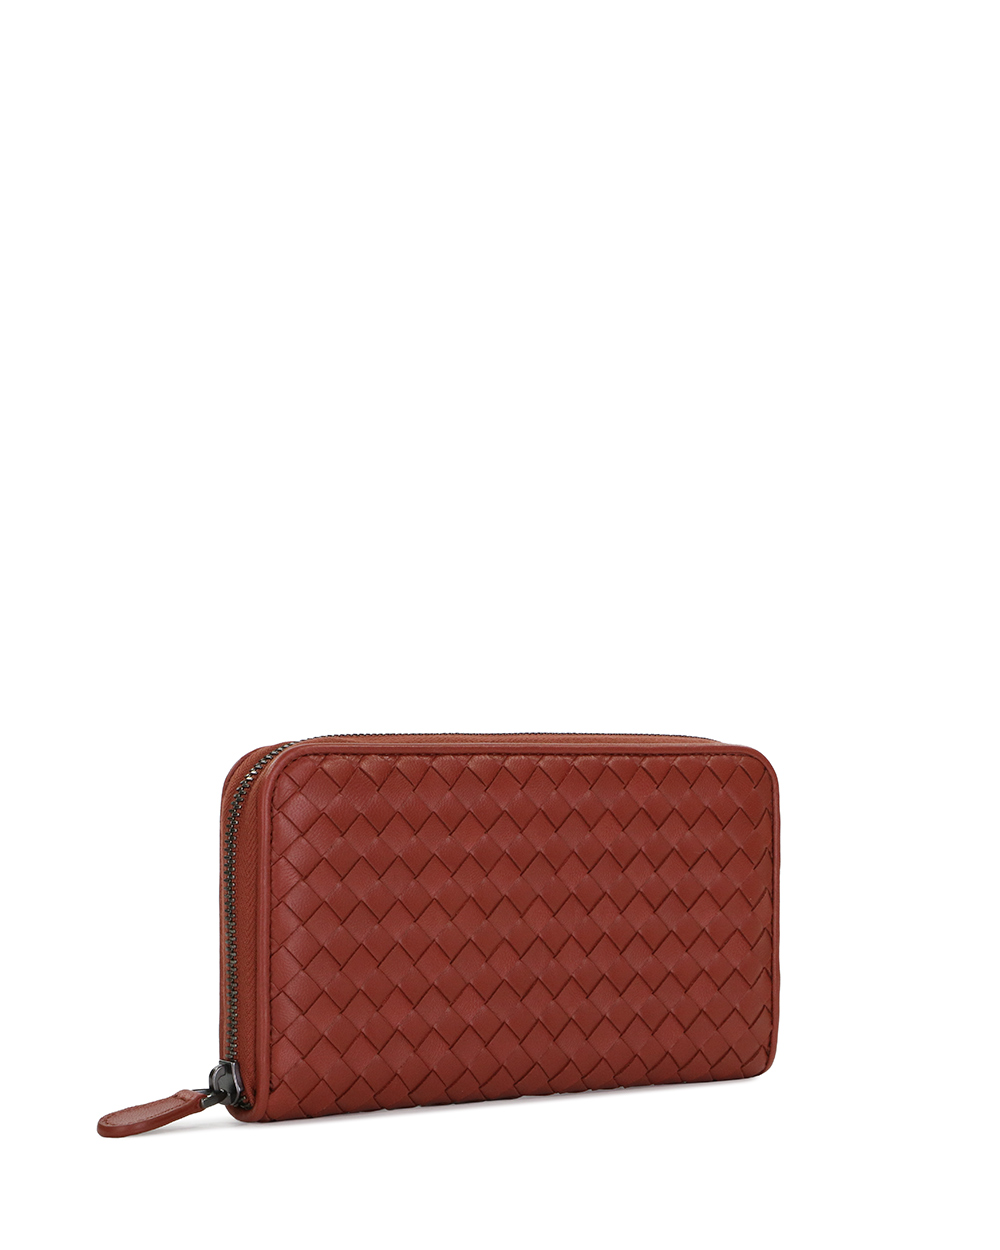 New Sauge Intrecciato Leather Zip Around Wallet 3